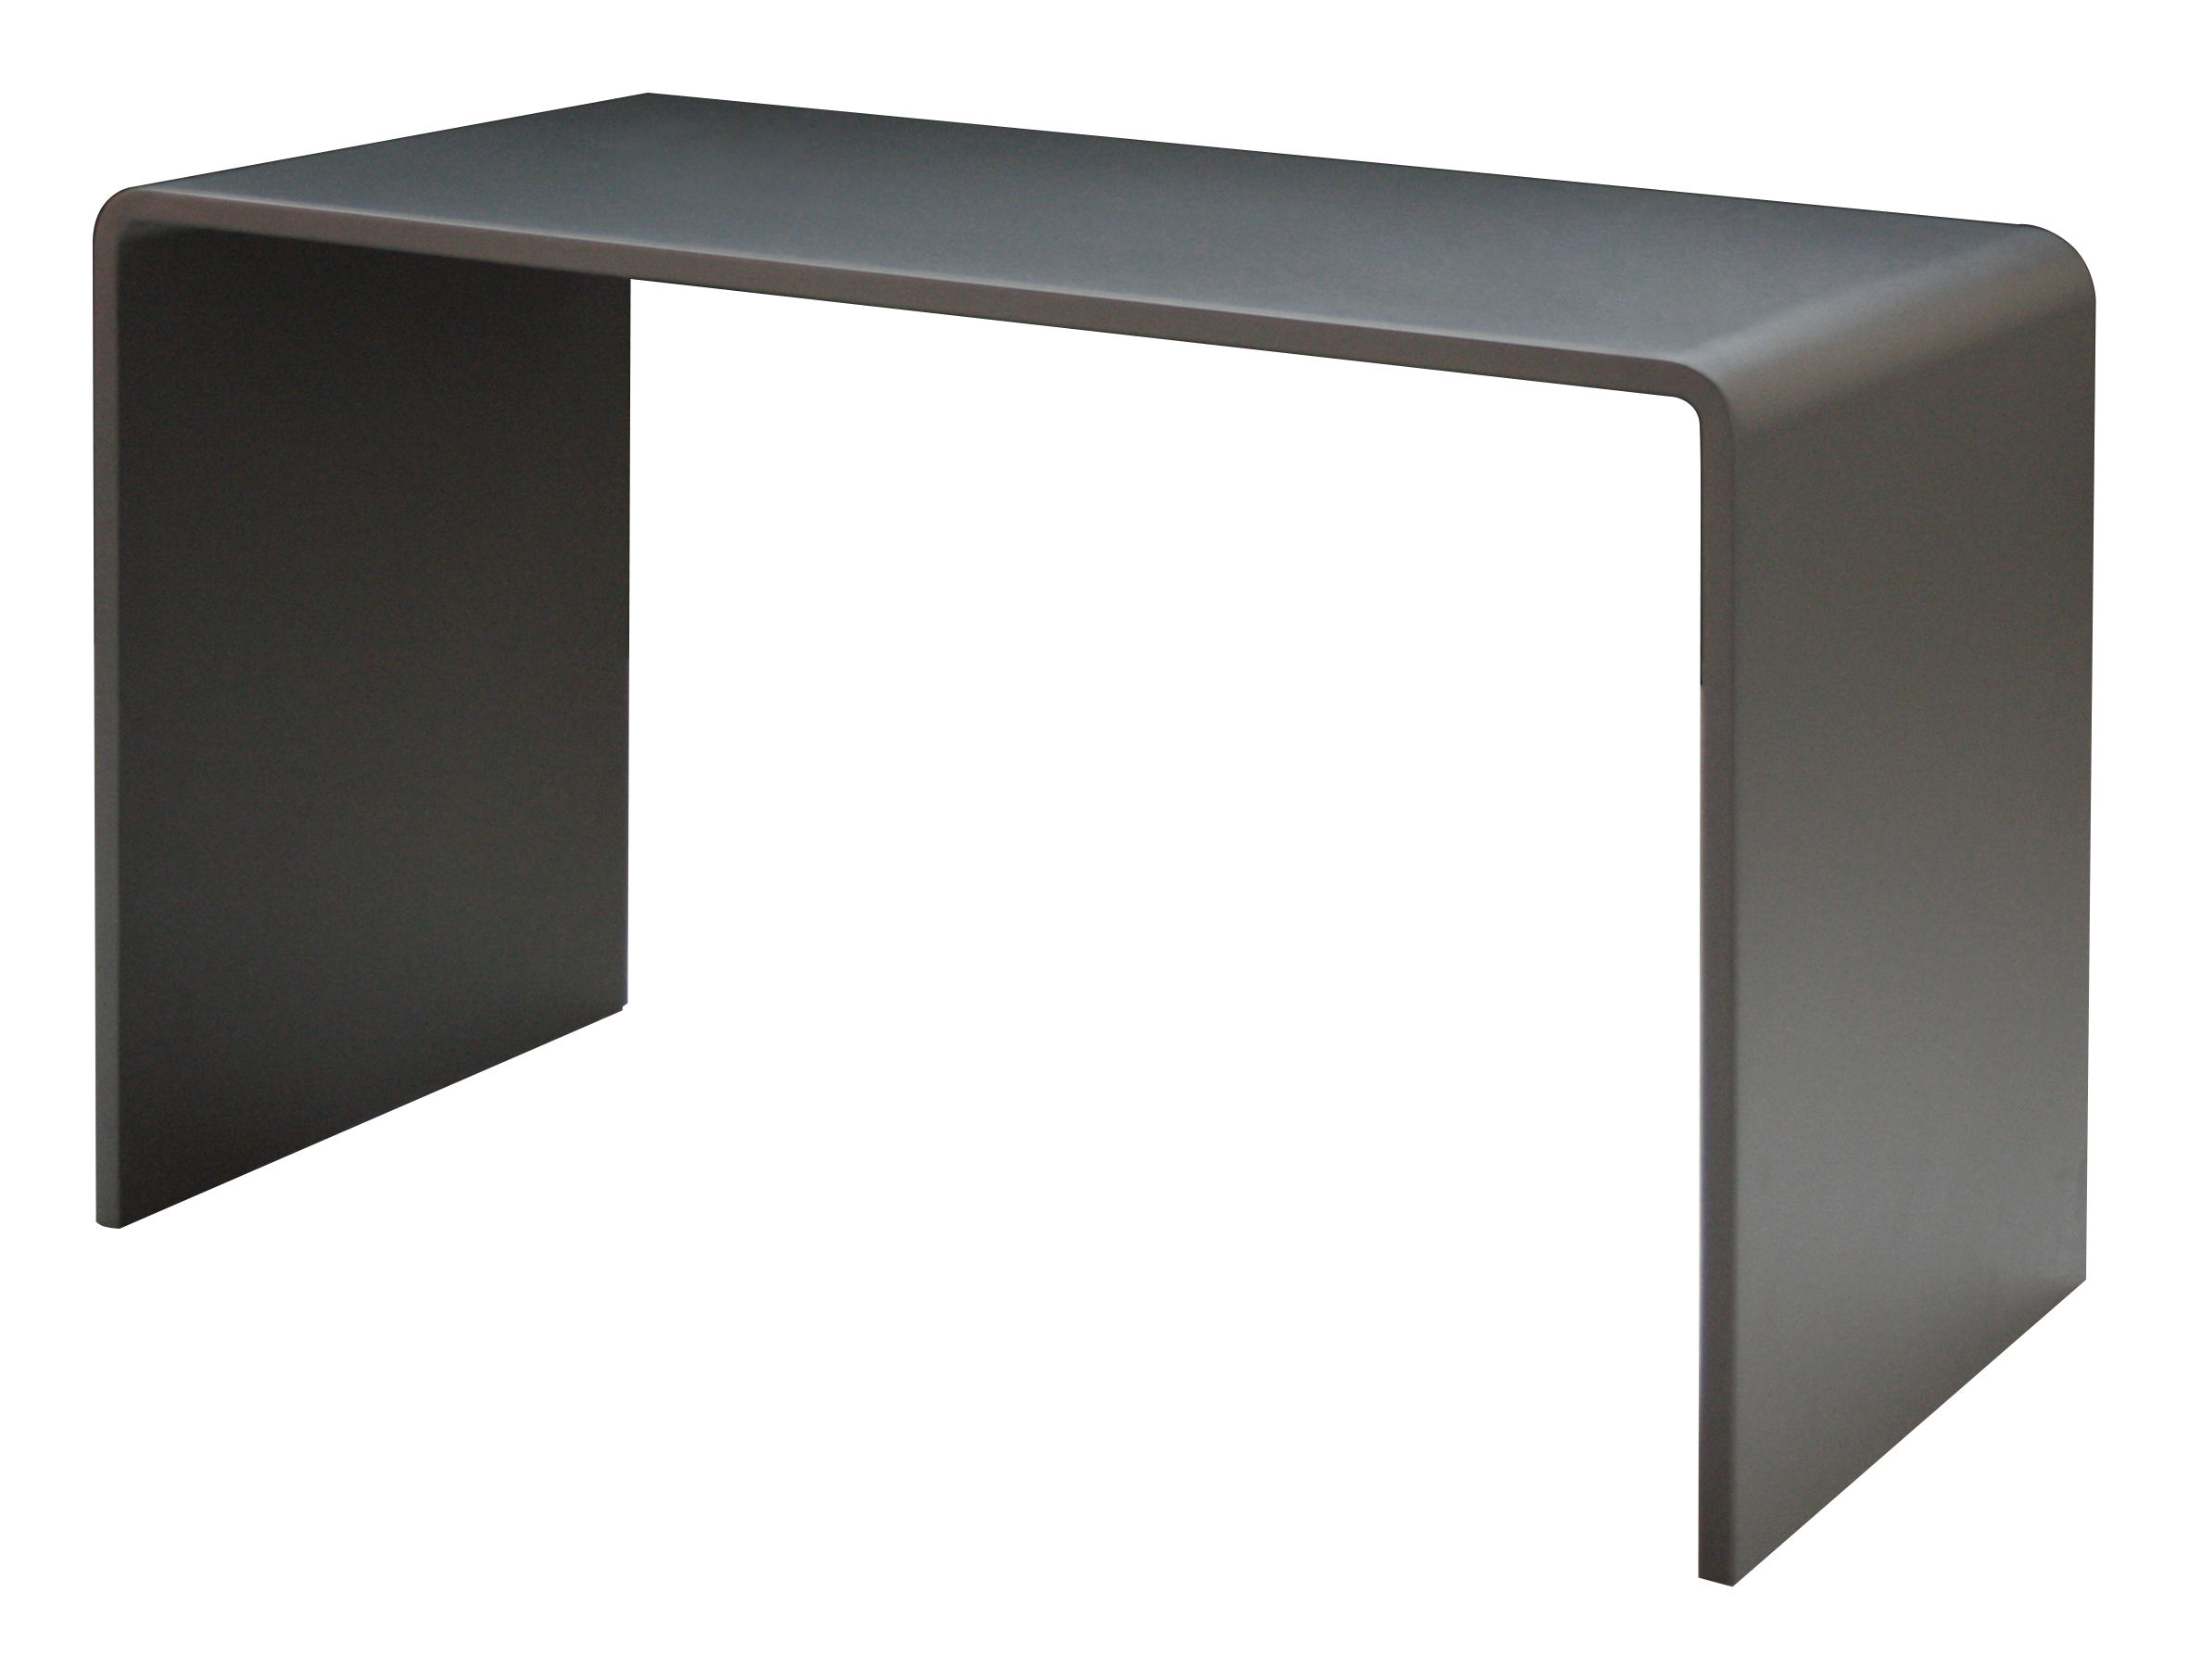 bureau solitaire l 120 cm gris canon de fusil zeus. Black Bedroom Furniture Sets. Home Design Ideas